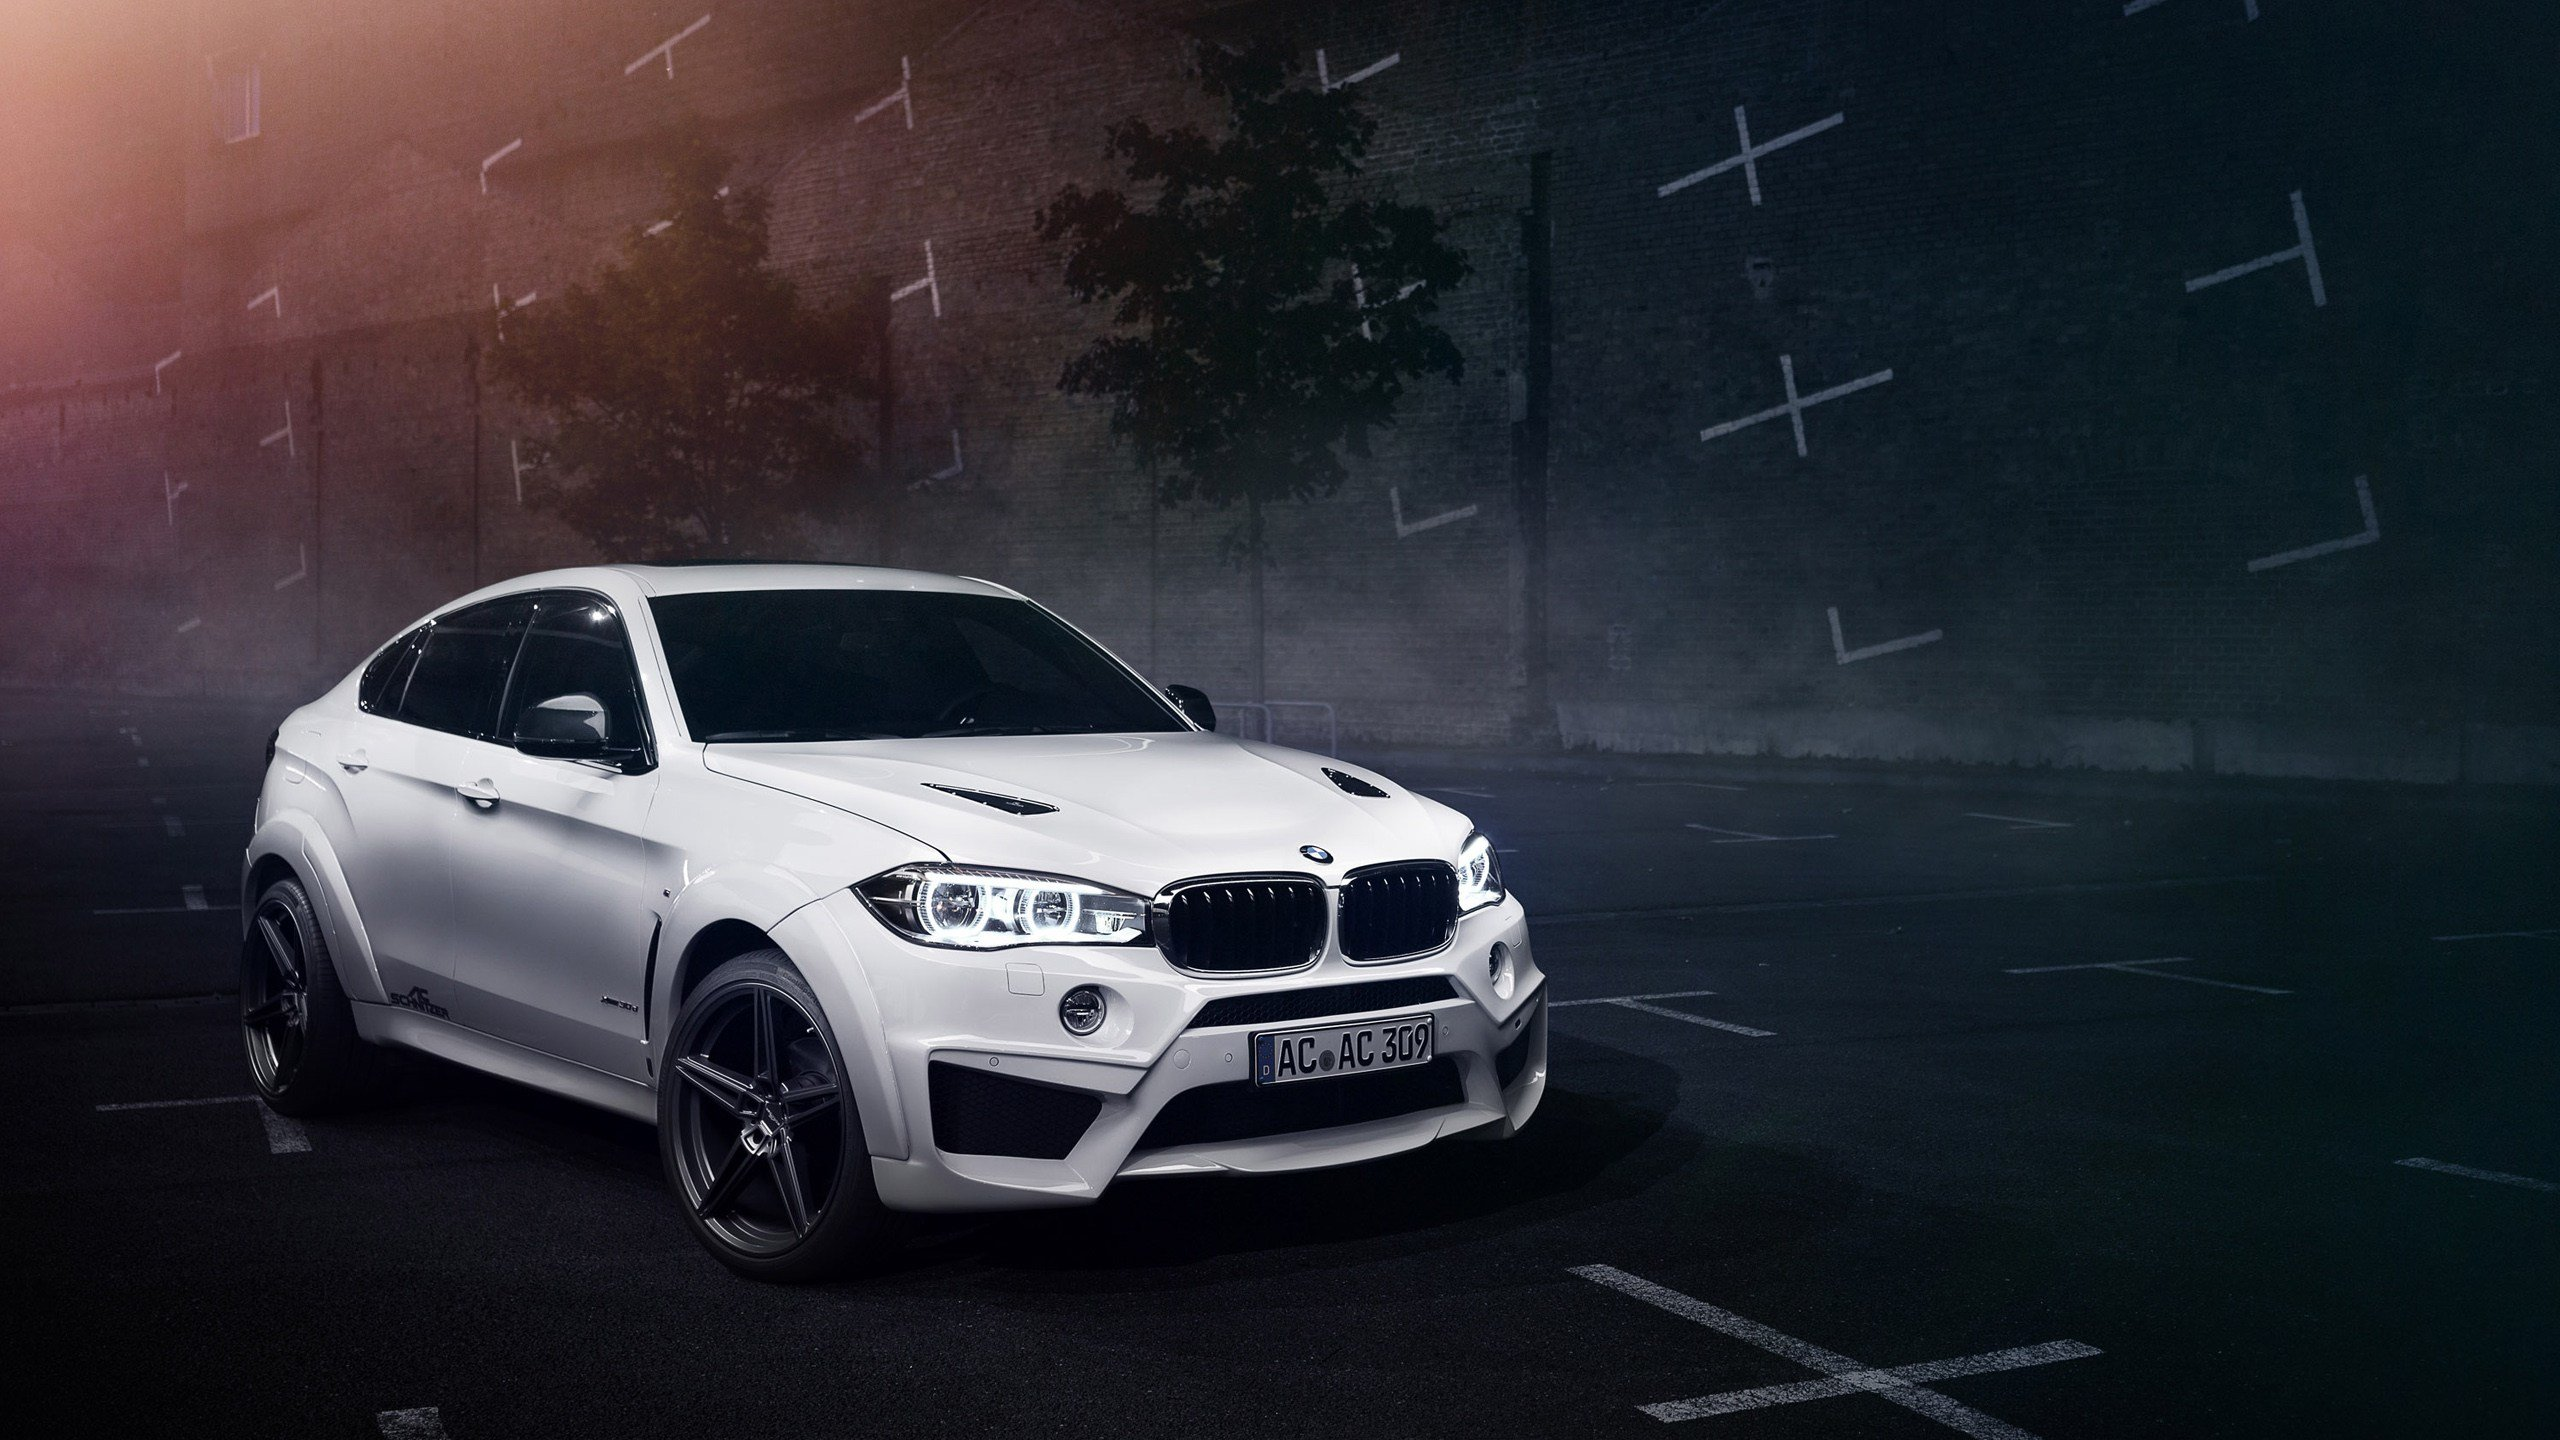 Latest 2015 Ac Schnitzer Bmw X6 M Falcon Wallpaper Hd Car Free Download